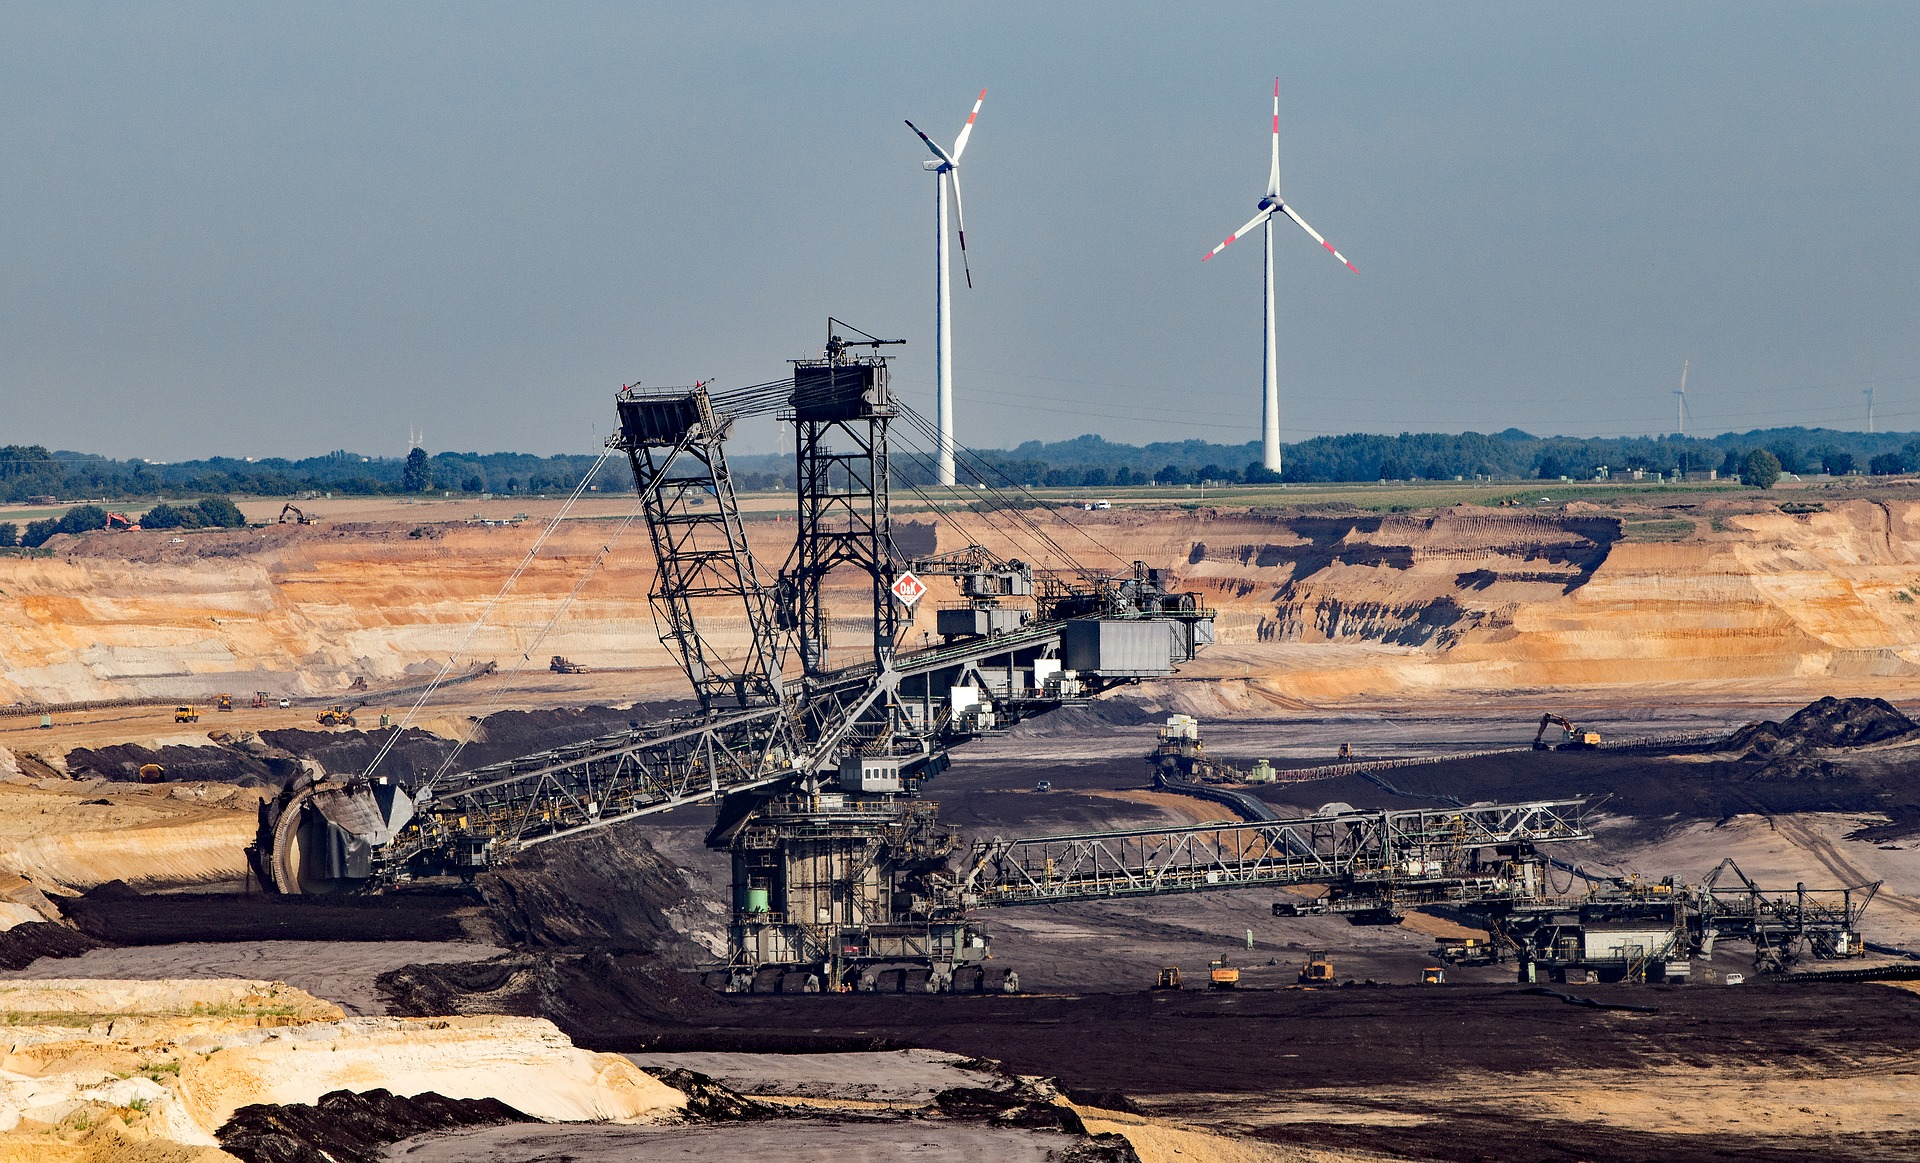 How can renewable energy technologies support mining and drilling?